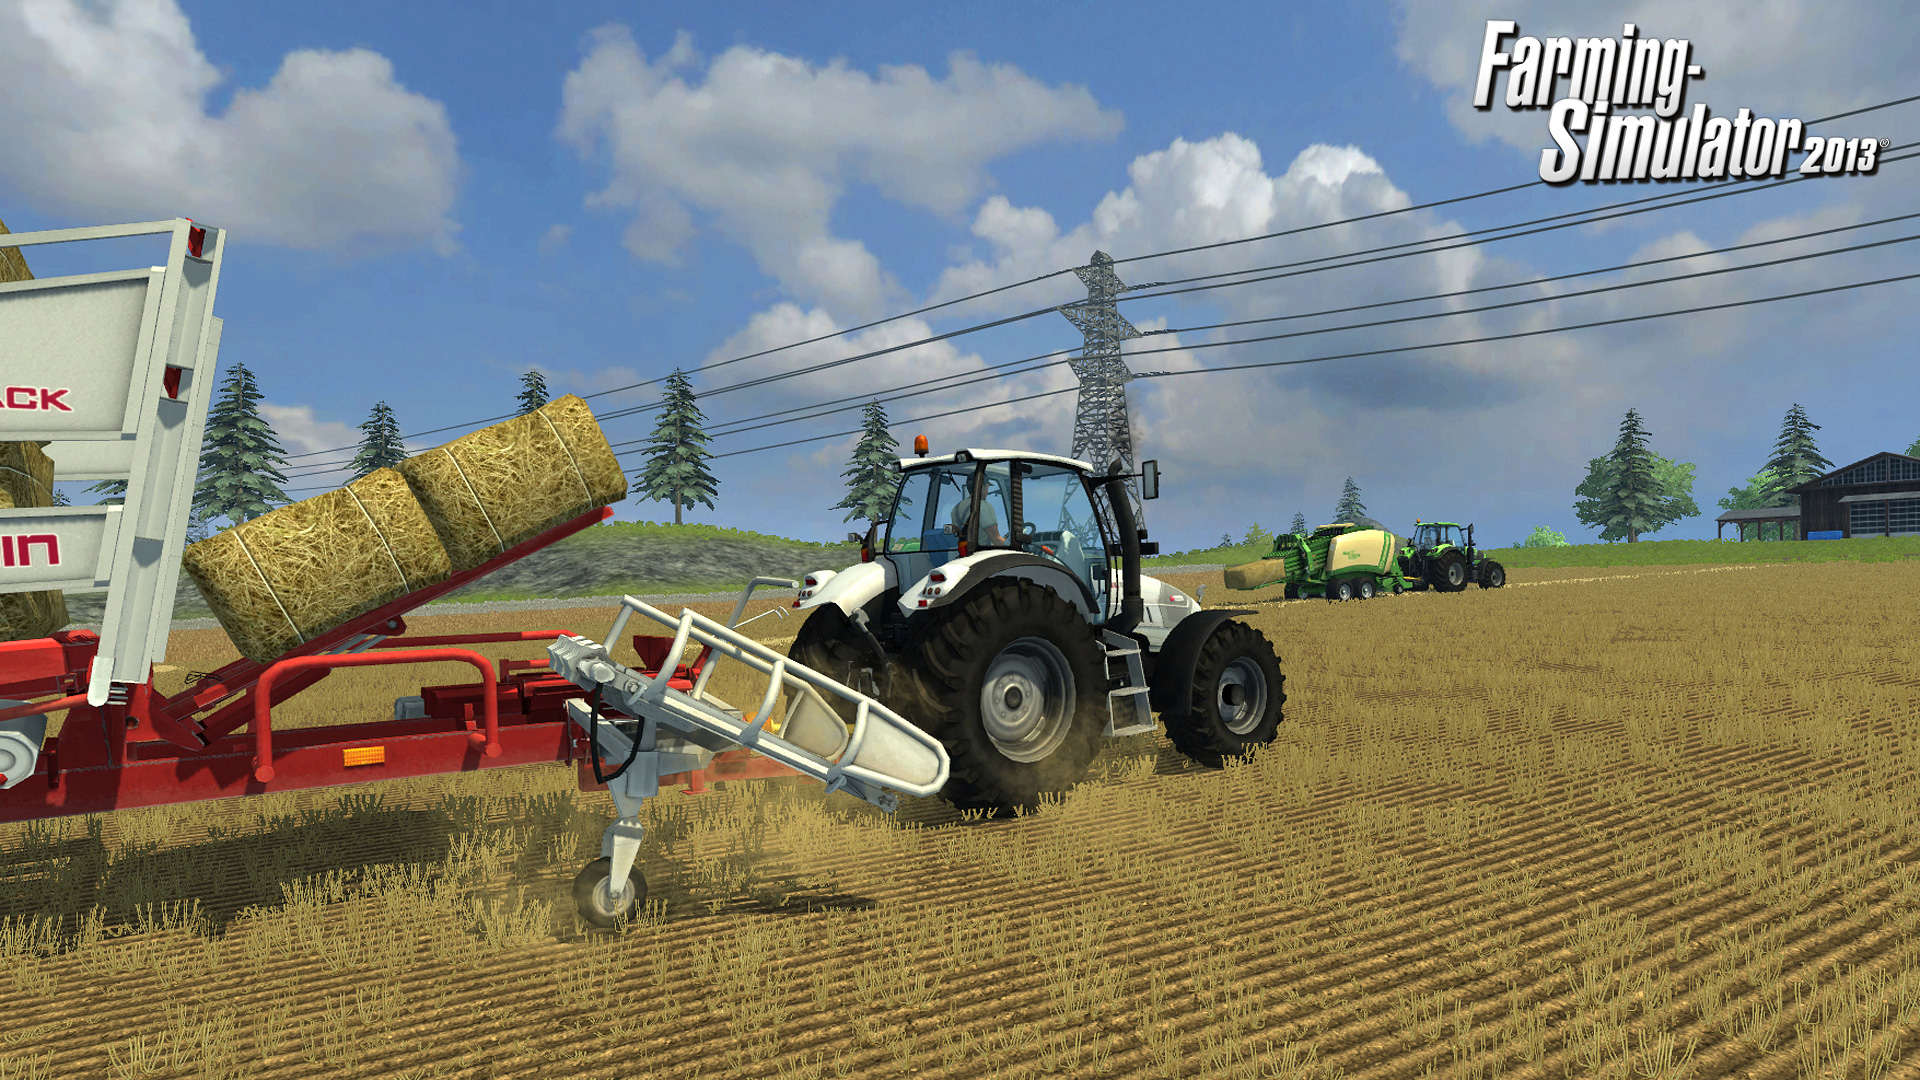 Concept Art Enemies Bosses besides Farming Simulator 2013 Xboxone likewise Fendt 513 937 likewise Farming Simulator 2013 New Features In Screenshots also Farming Simulator 2013 Xboxone. on animal farming equipment